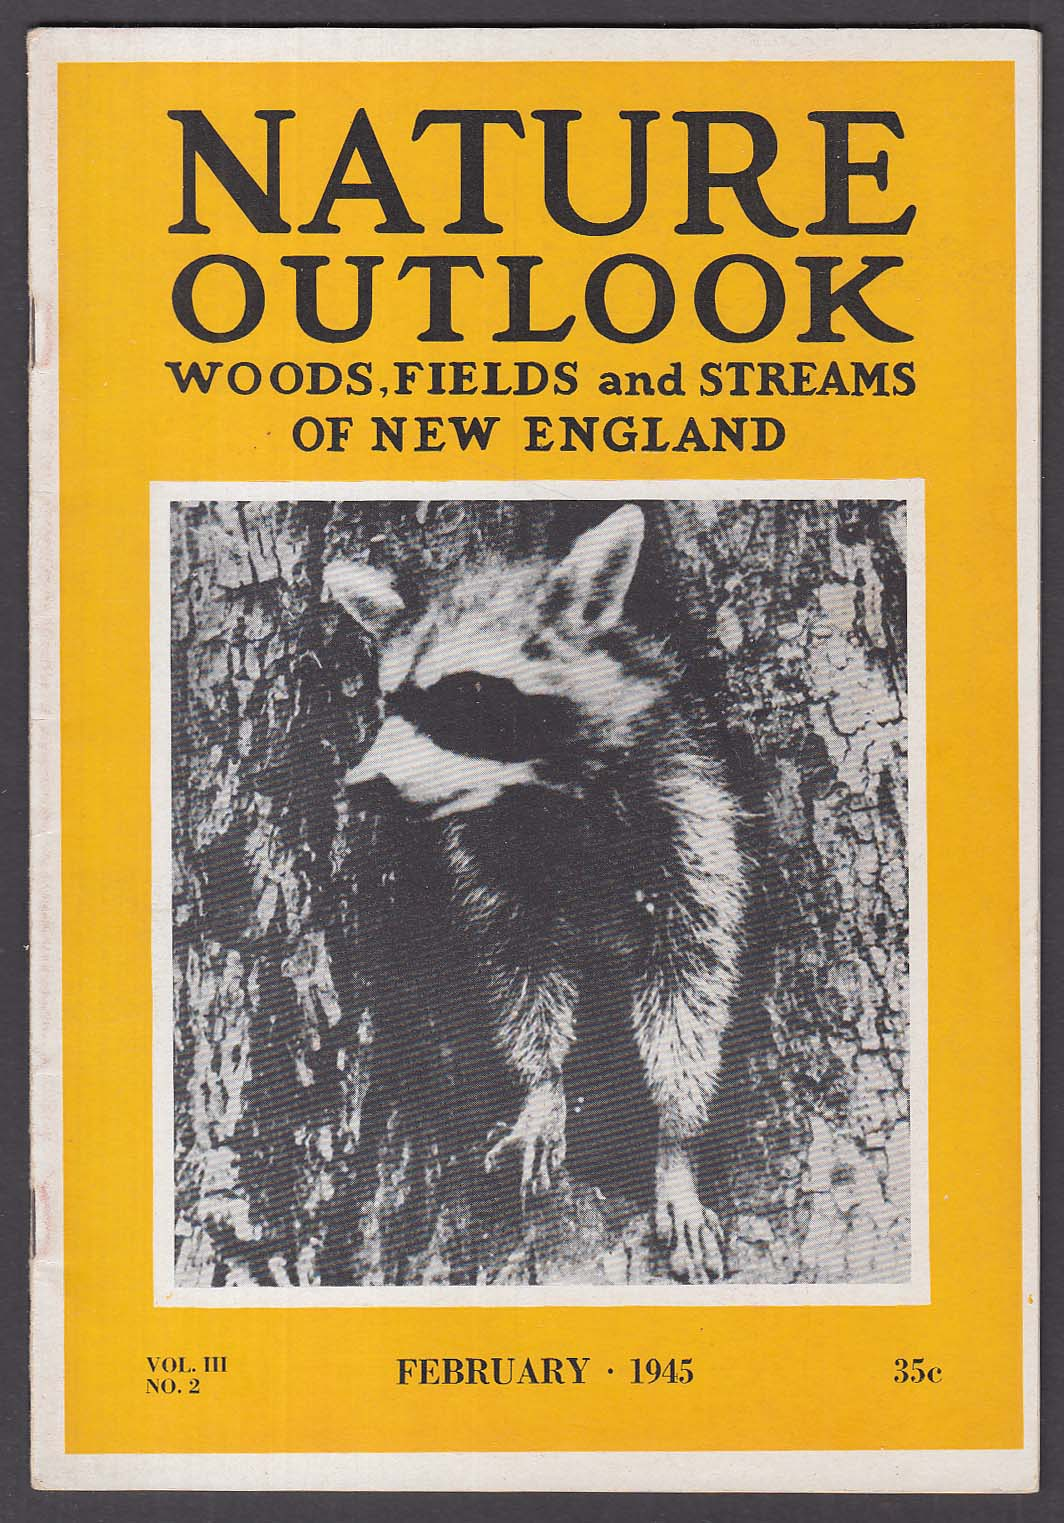 NATURE OUTLOOK Worcester Natural History Society Raccoons Concord River + 2 1945